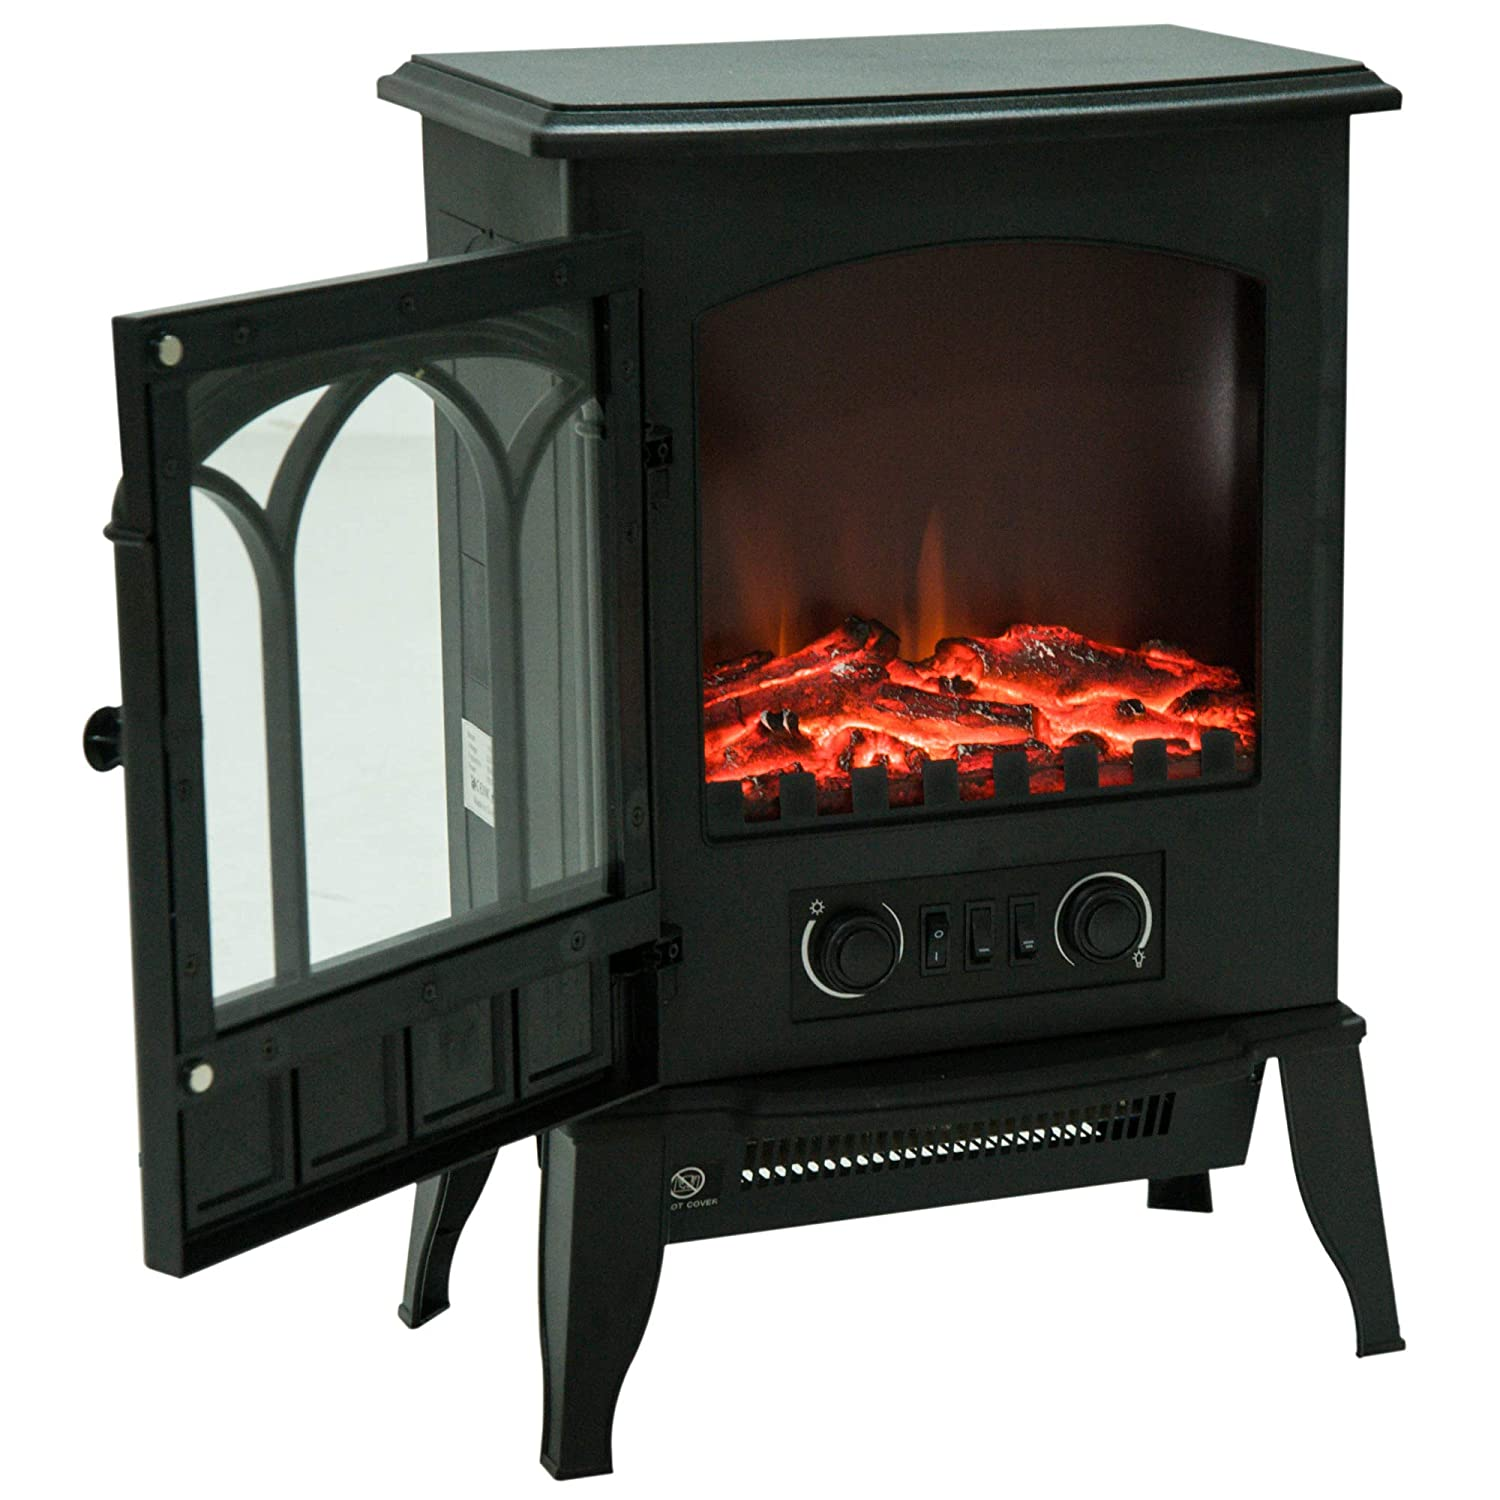 HOMCOM Freestanding Electric Fireplace Heater with LED Flame Effect Remote Control 1000W/2000W Sold by MHSTAR